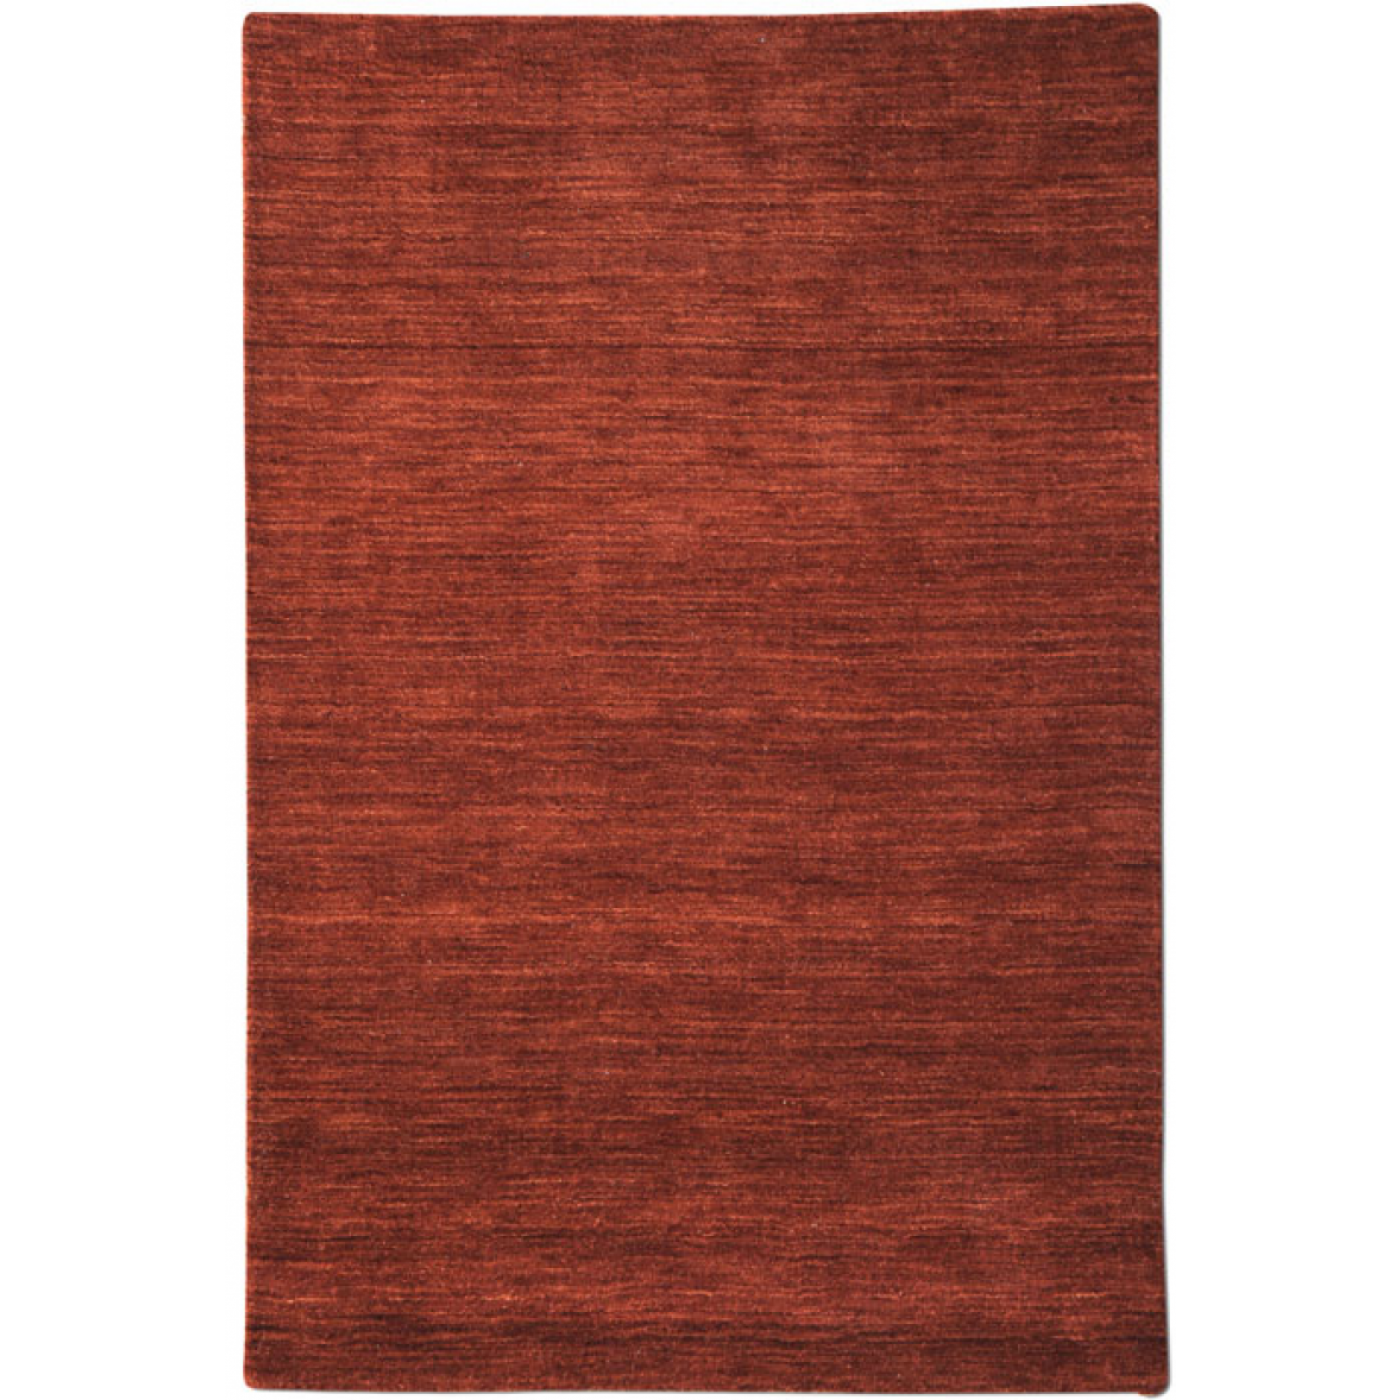 Vloerkleed Roma brown